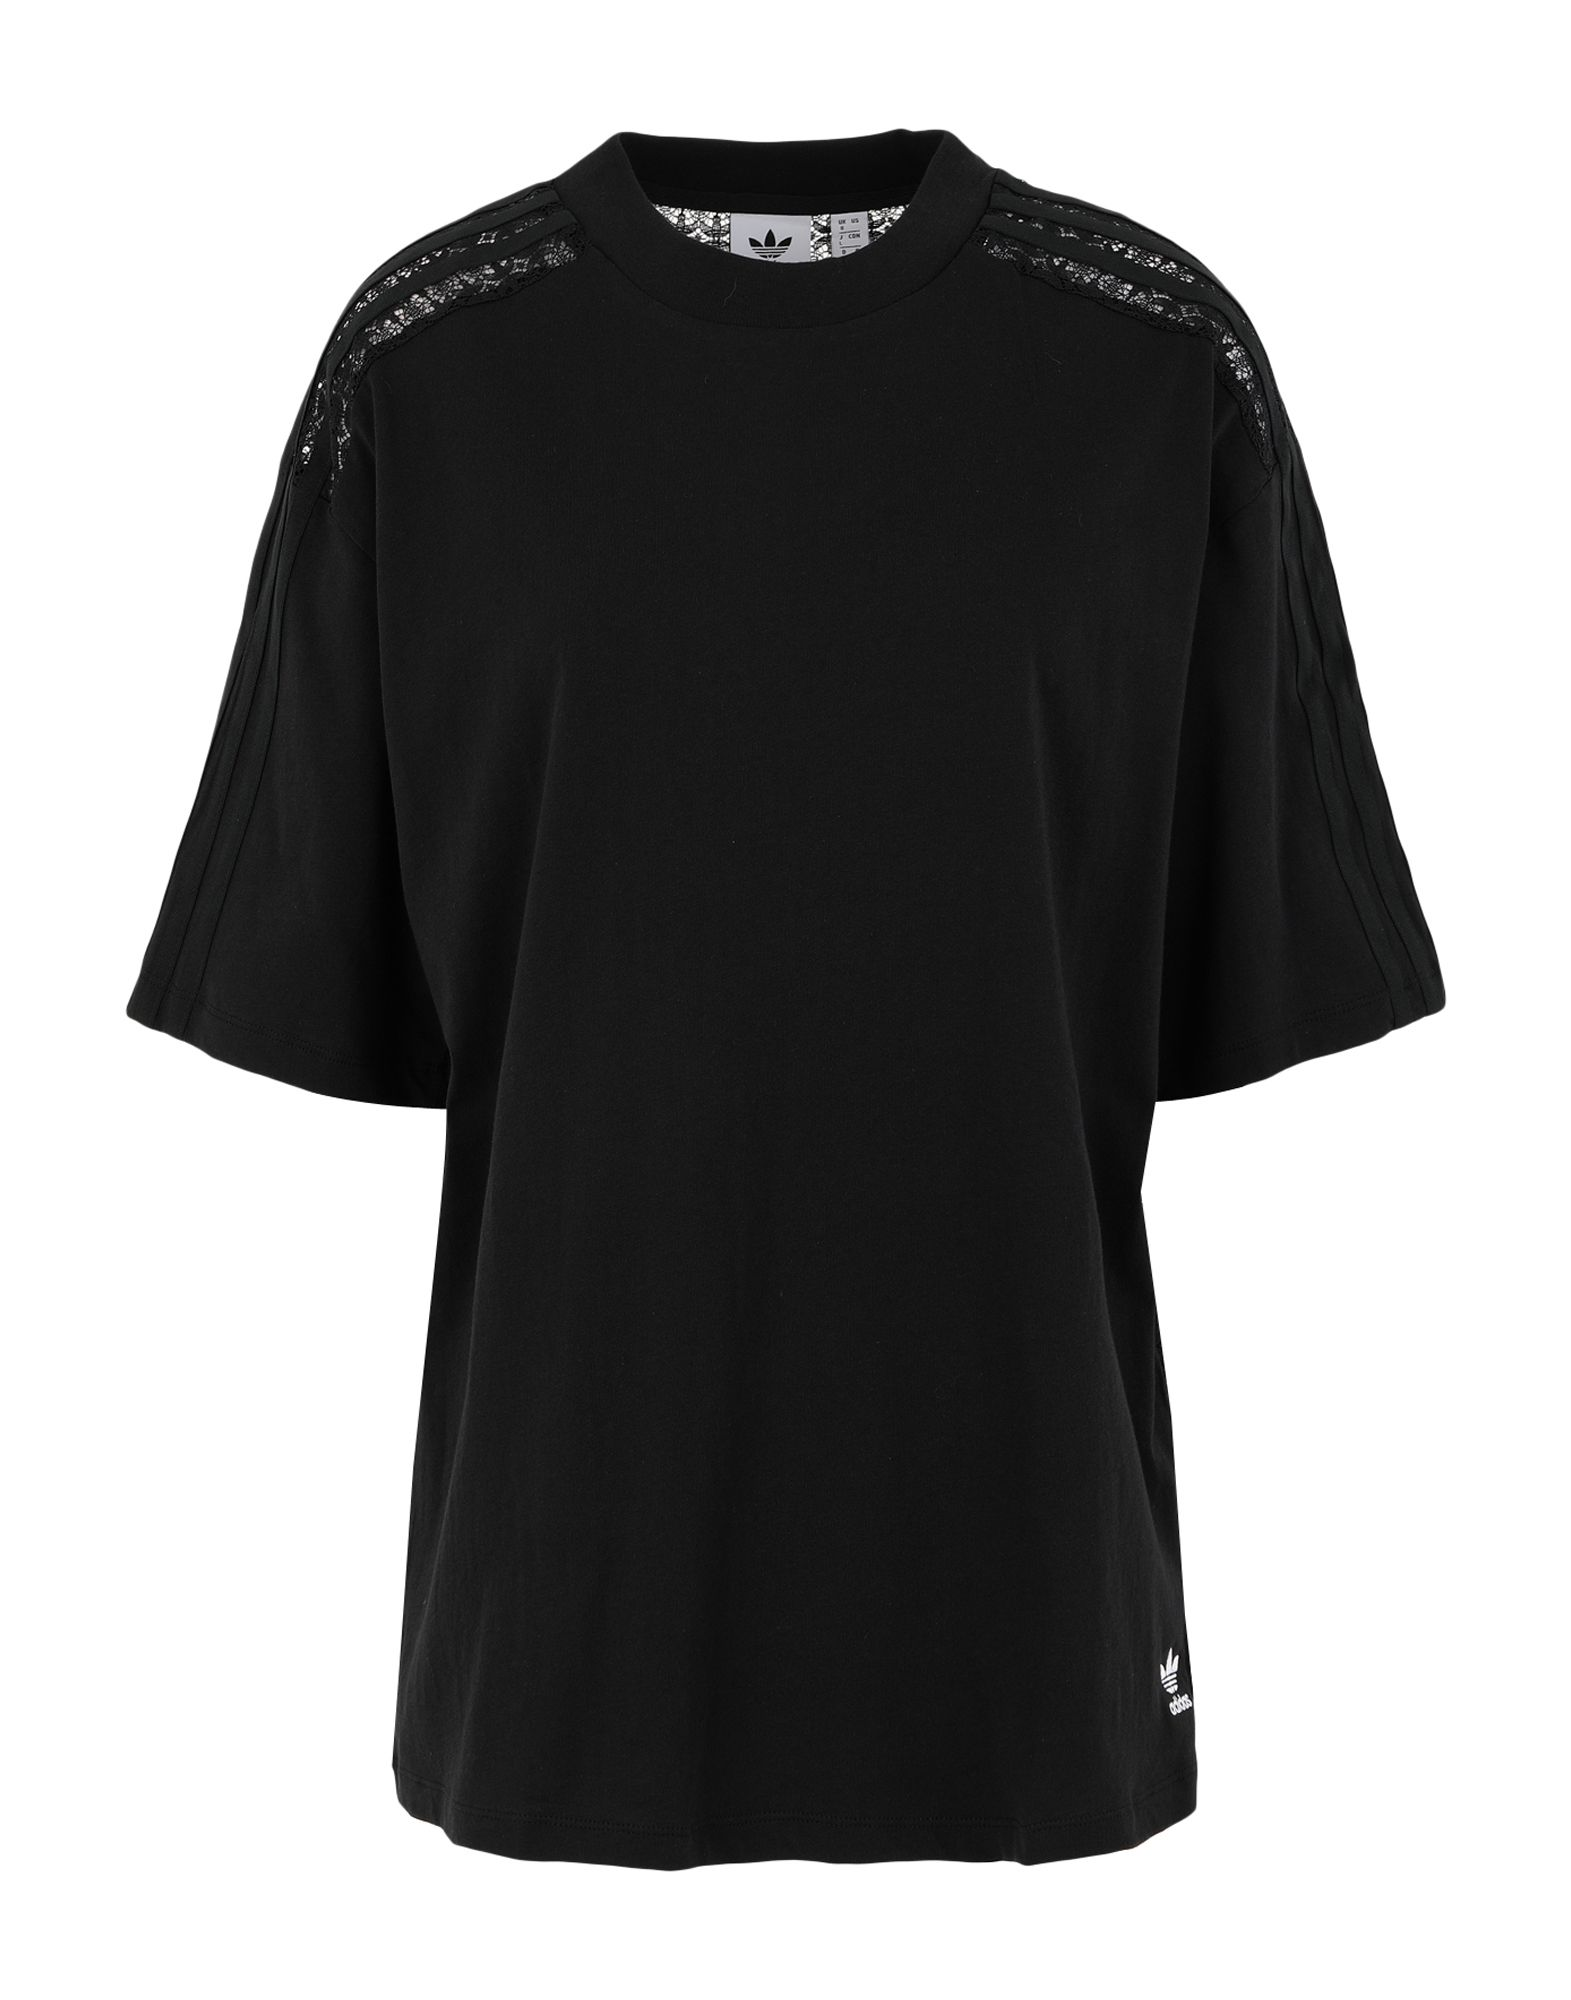 lace, jersey, logo, solid color, round collar, short sleeves, lifestyle.